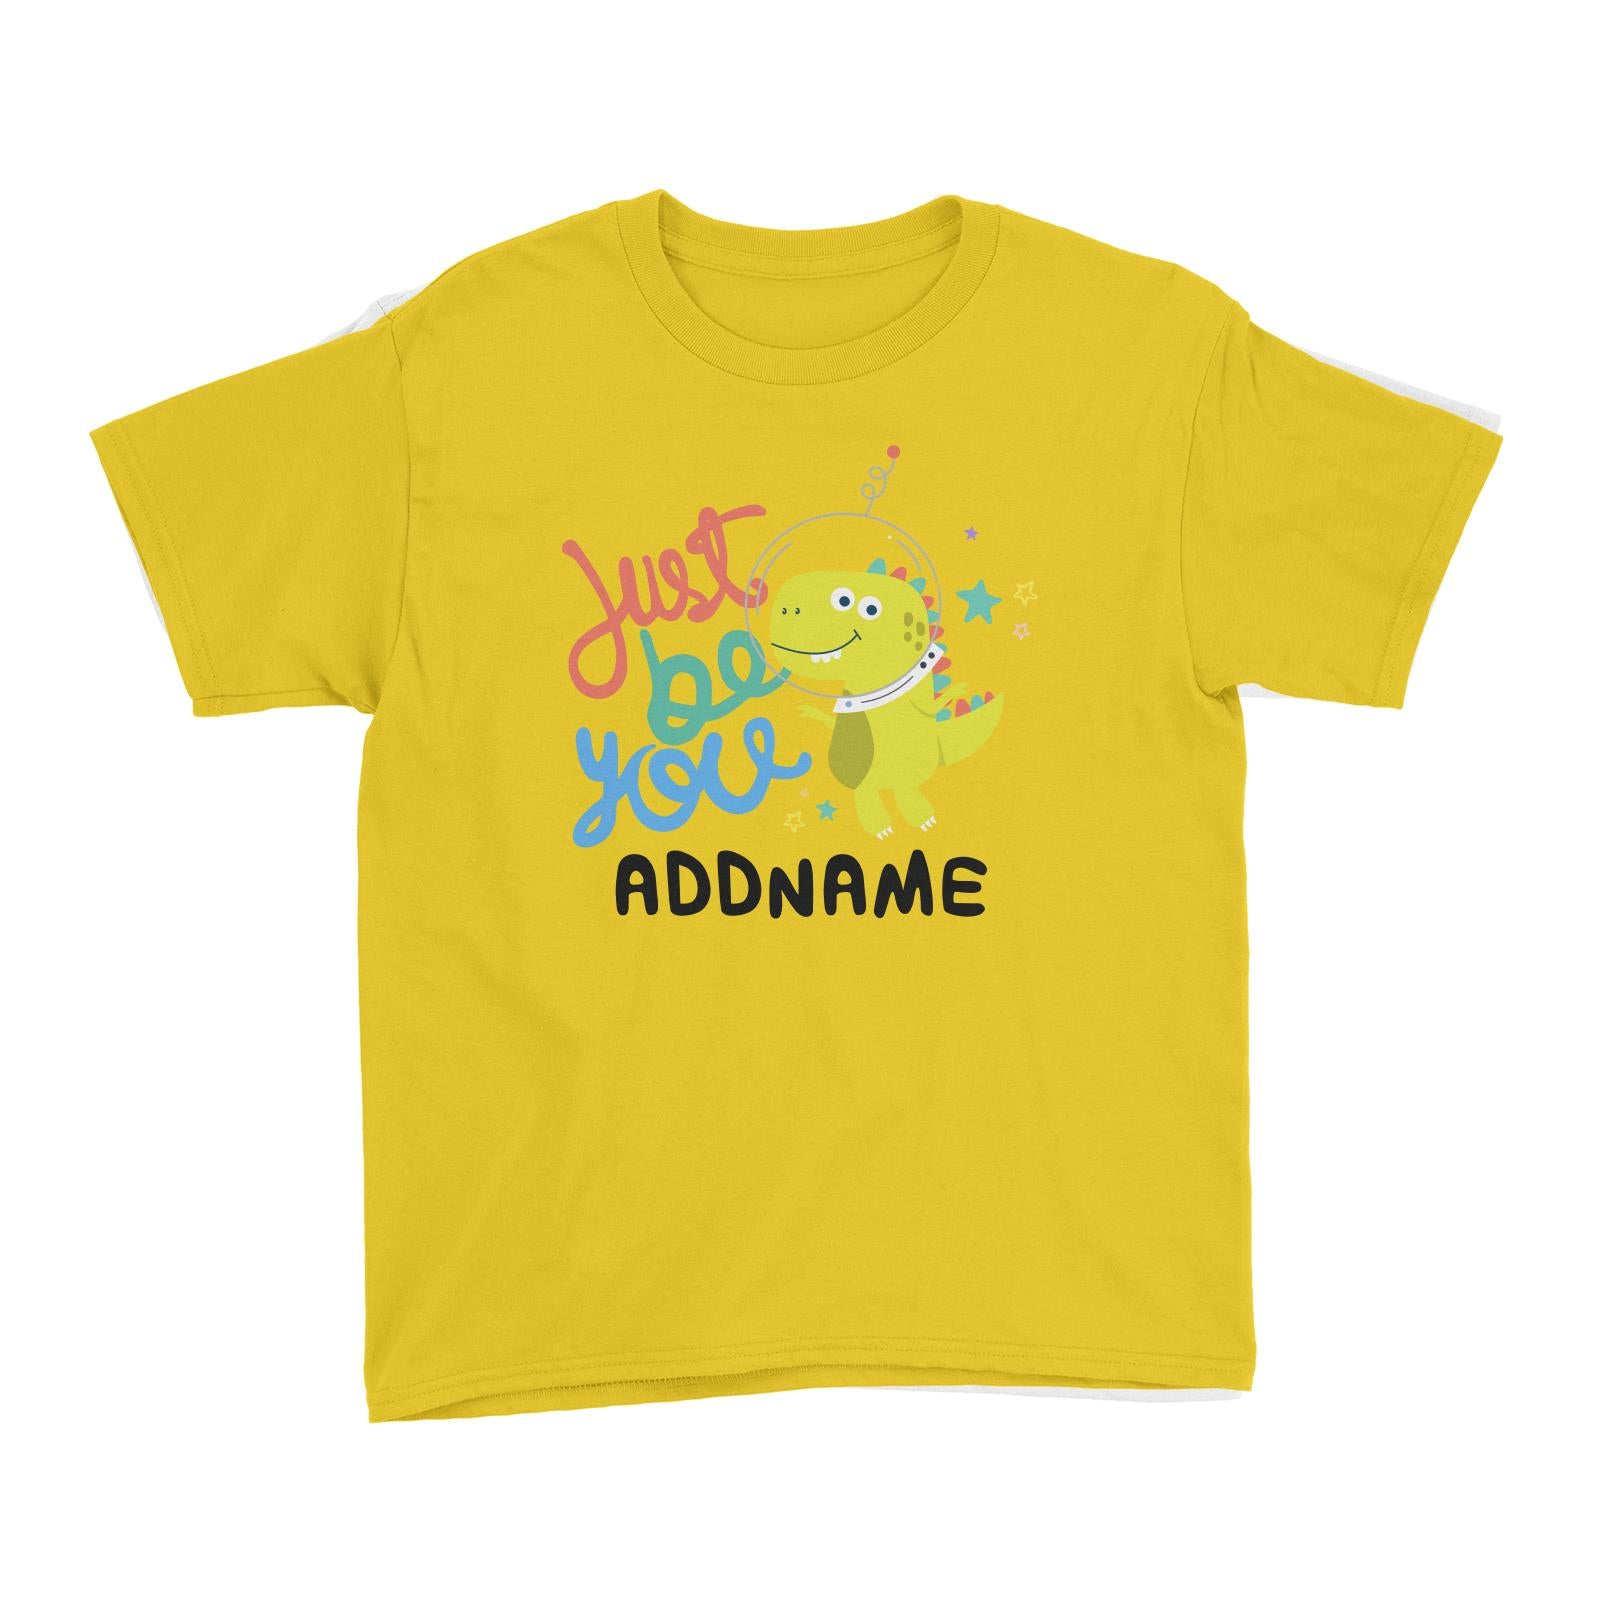 Children's Day Gift Series Just Be You Space Dinosaur Addname Kid's T-Shirt